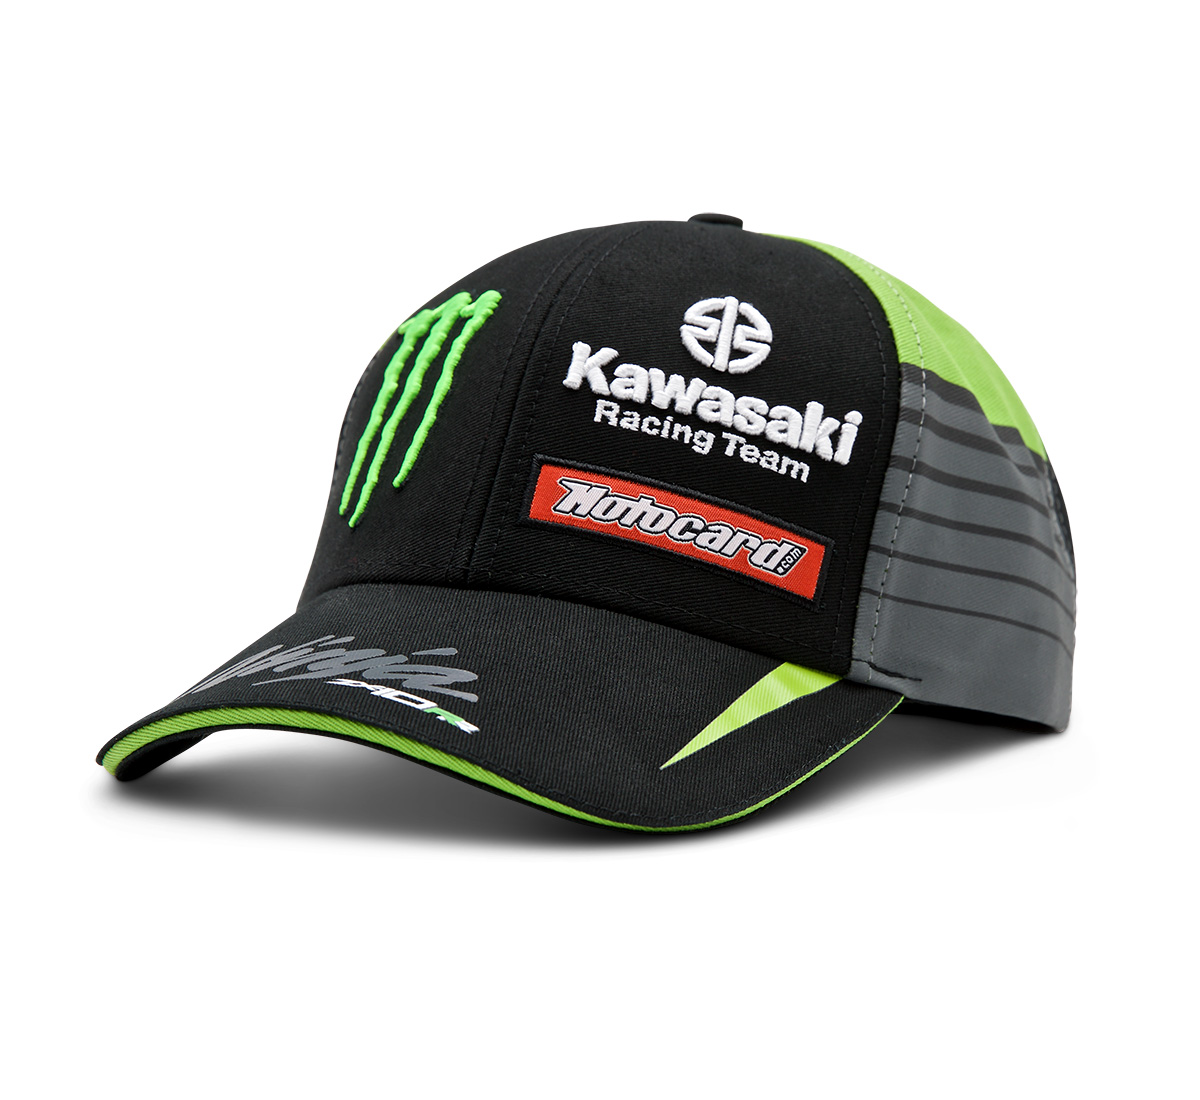 KRT WorldSBK Replica Cap